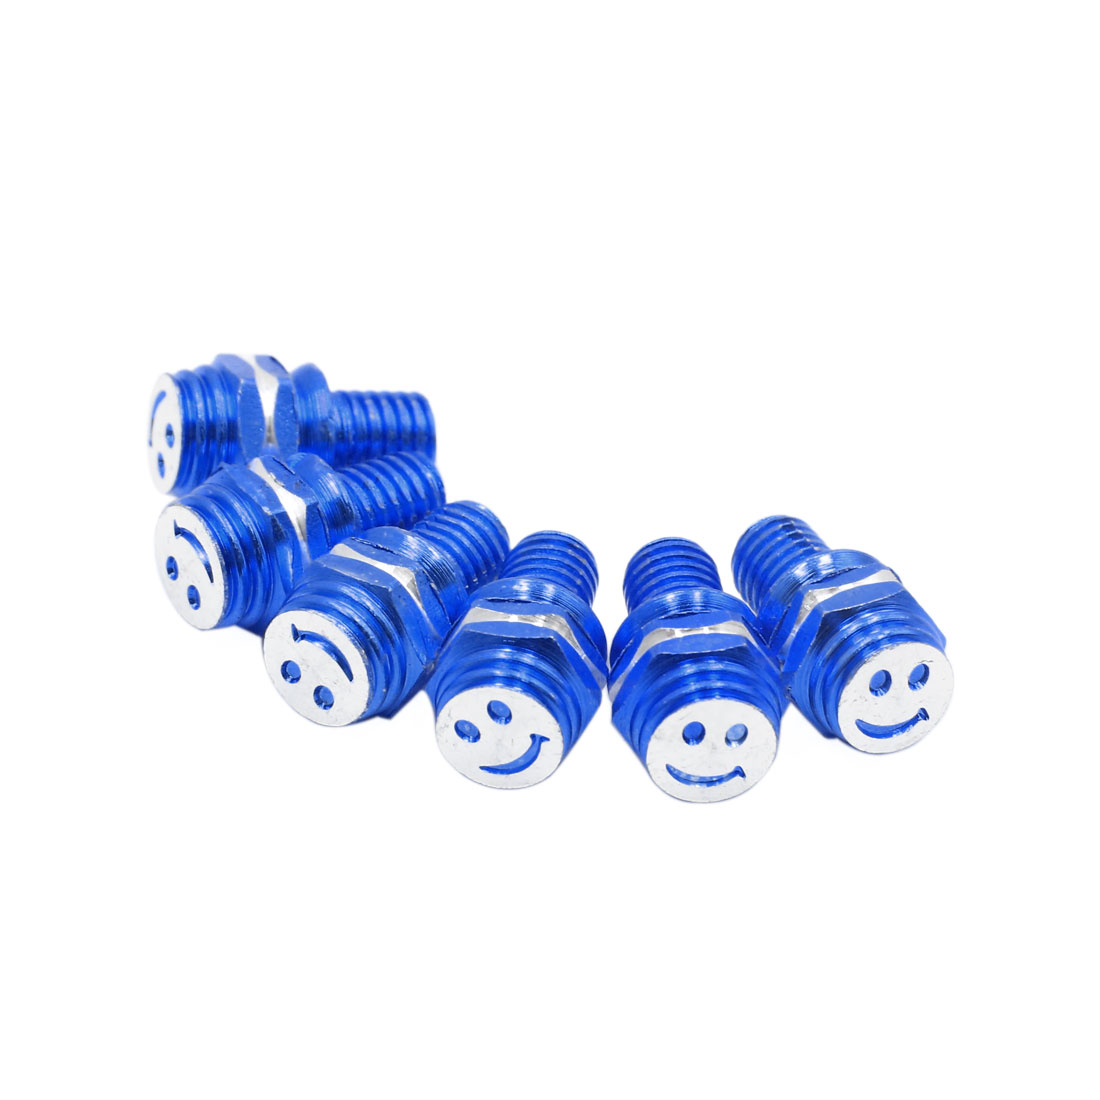 6pcs Blue 8mm Thread Diameter Smiling Face Pattern Motorcycle License Plate Bolt Screws